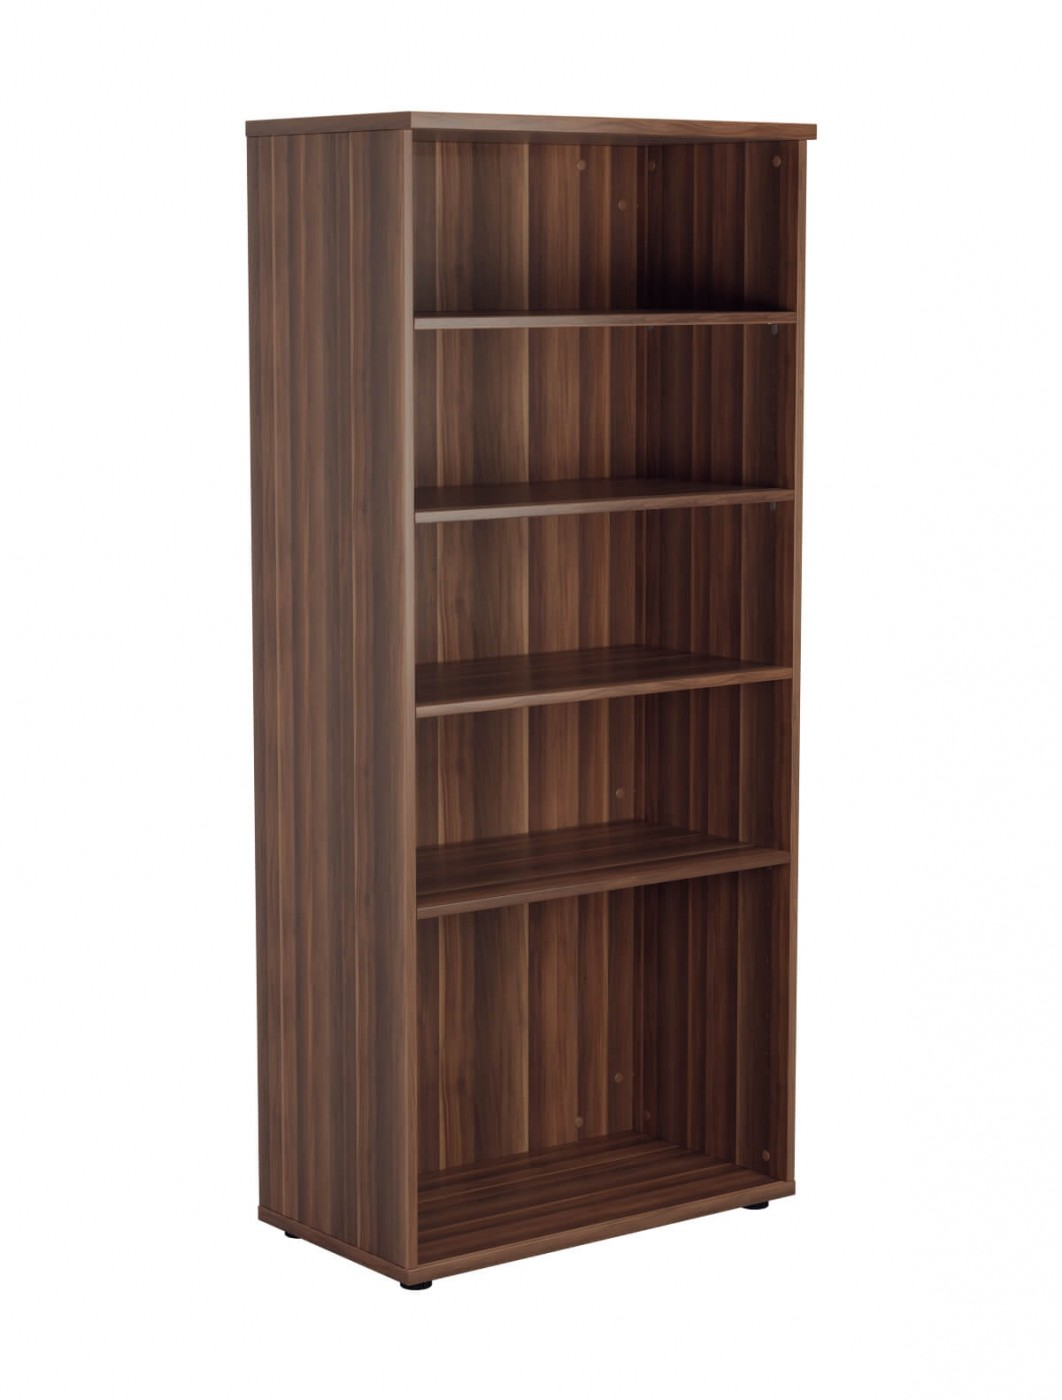 office furniture bookcase 1 8m tall bookcase tes1845 121 office rh 121officefurniture co uk office furniture shelving office furniture shelving units